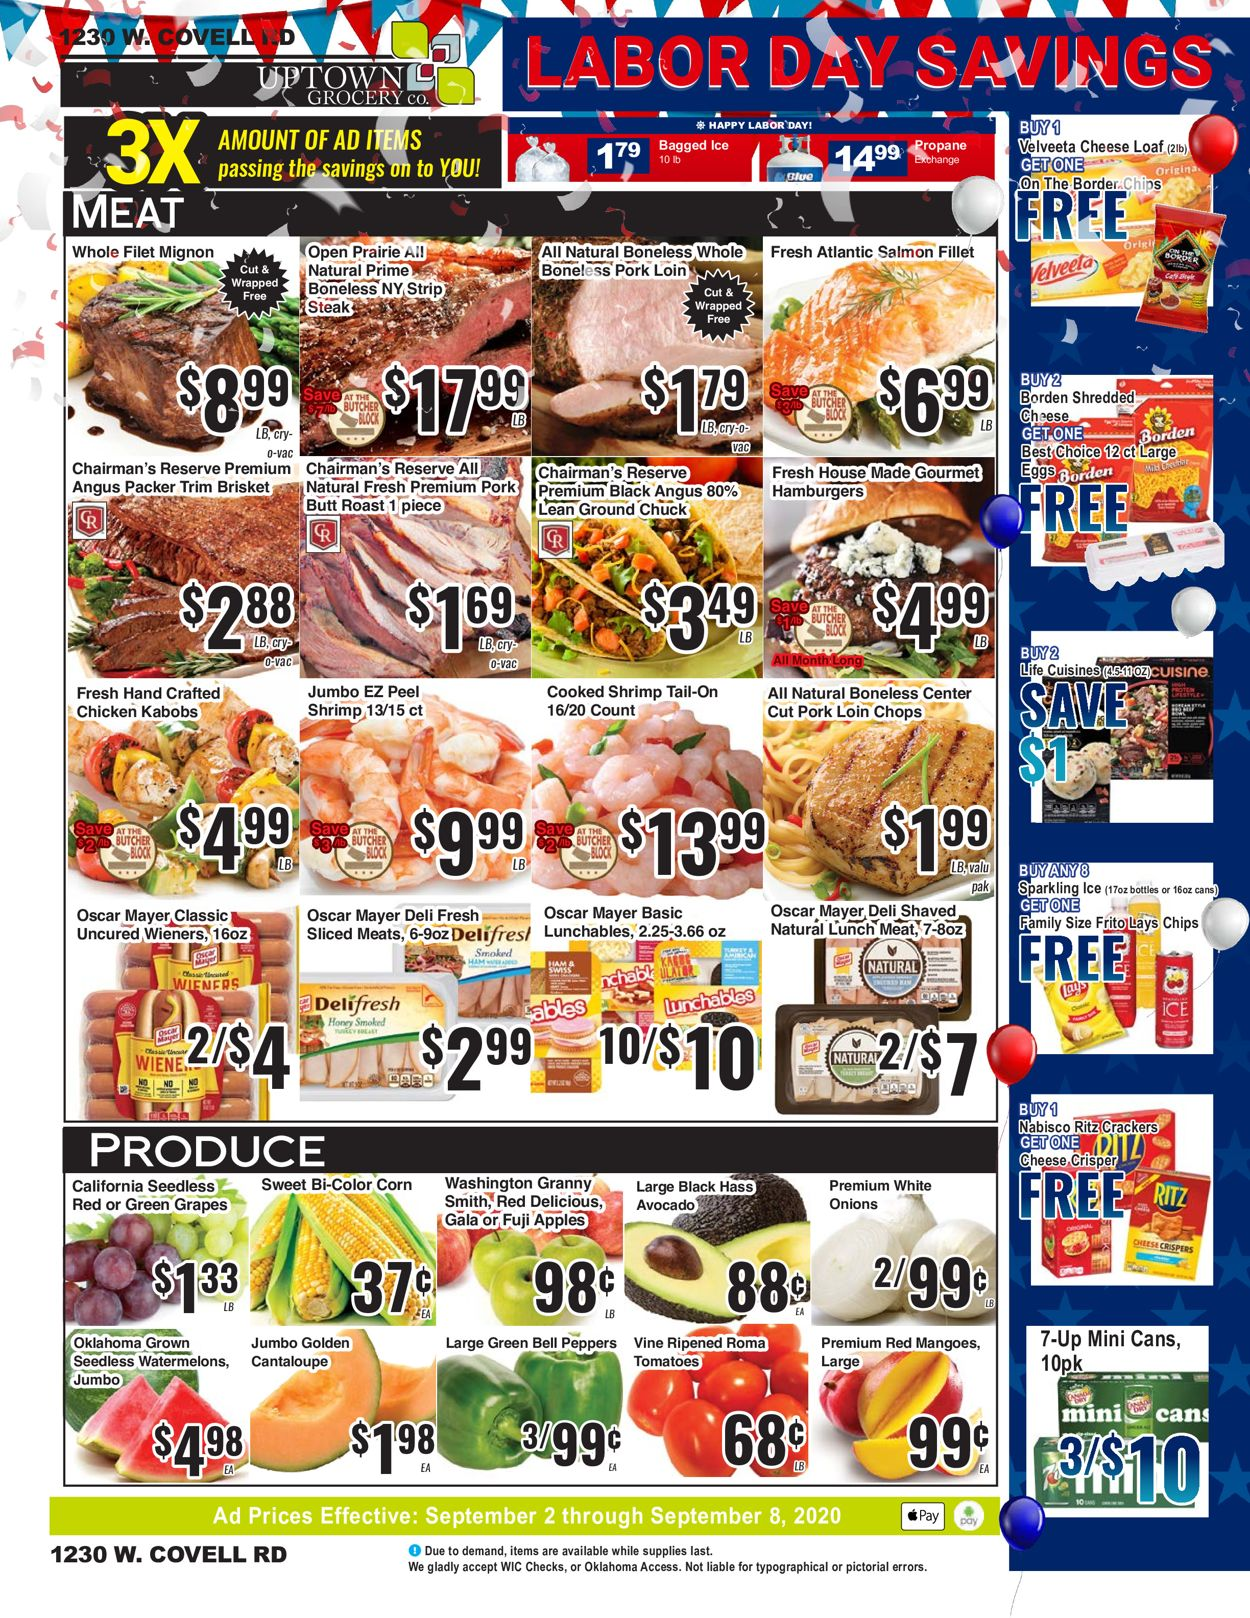 Uptown Grocery Co. Weekly Ad Circular - valid 09/02-09/08/2020